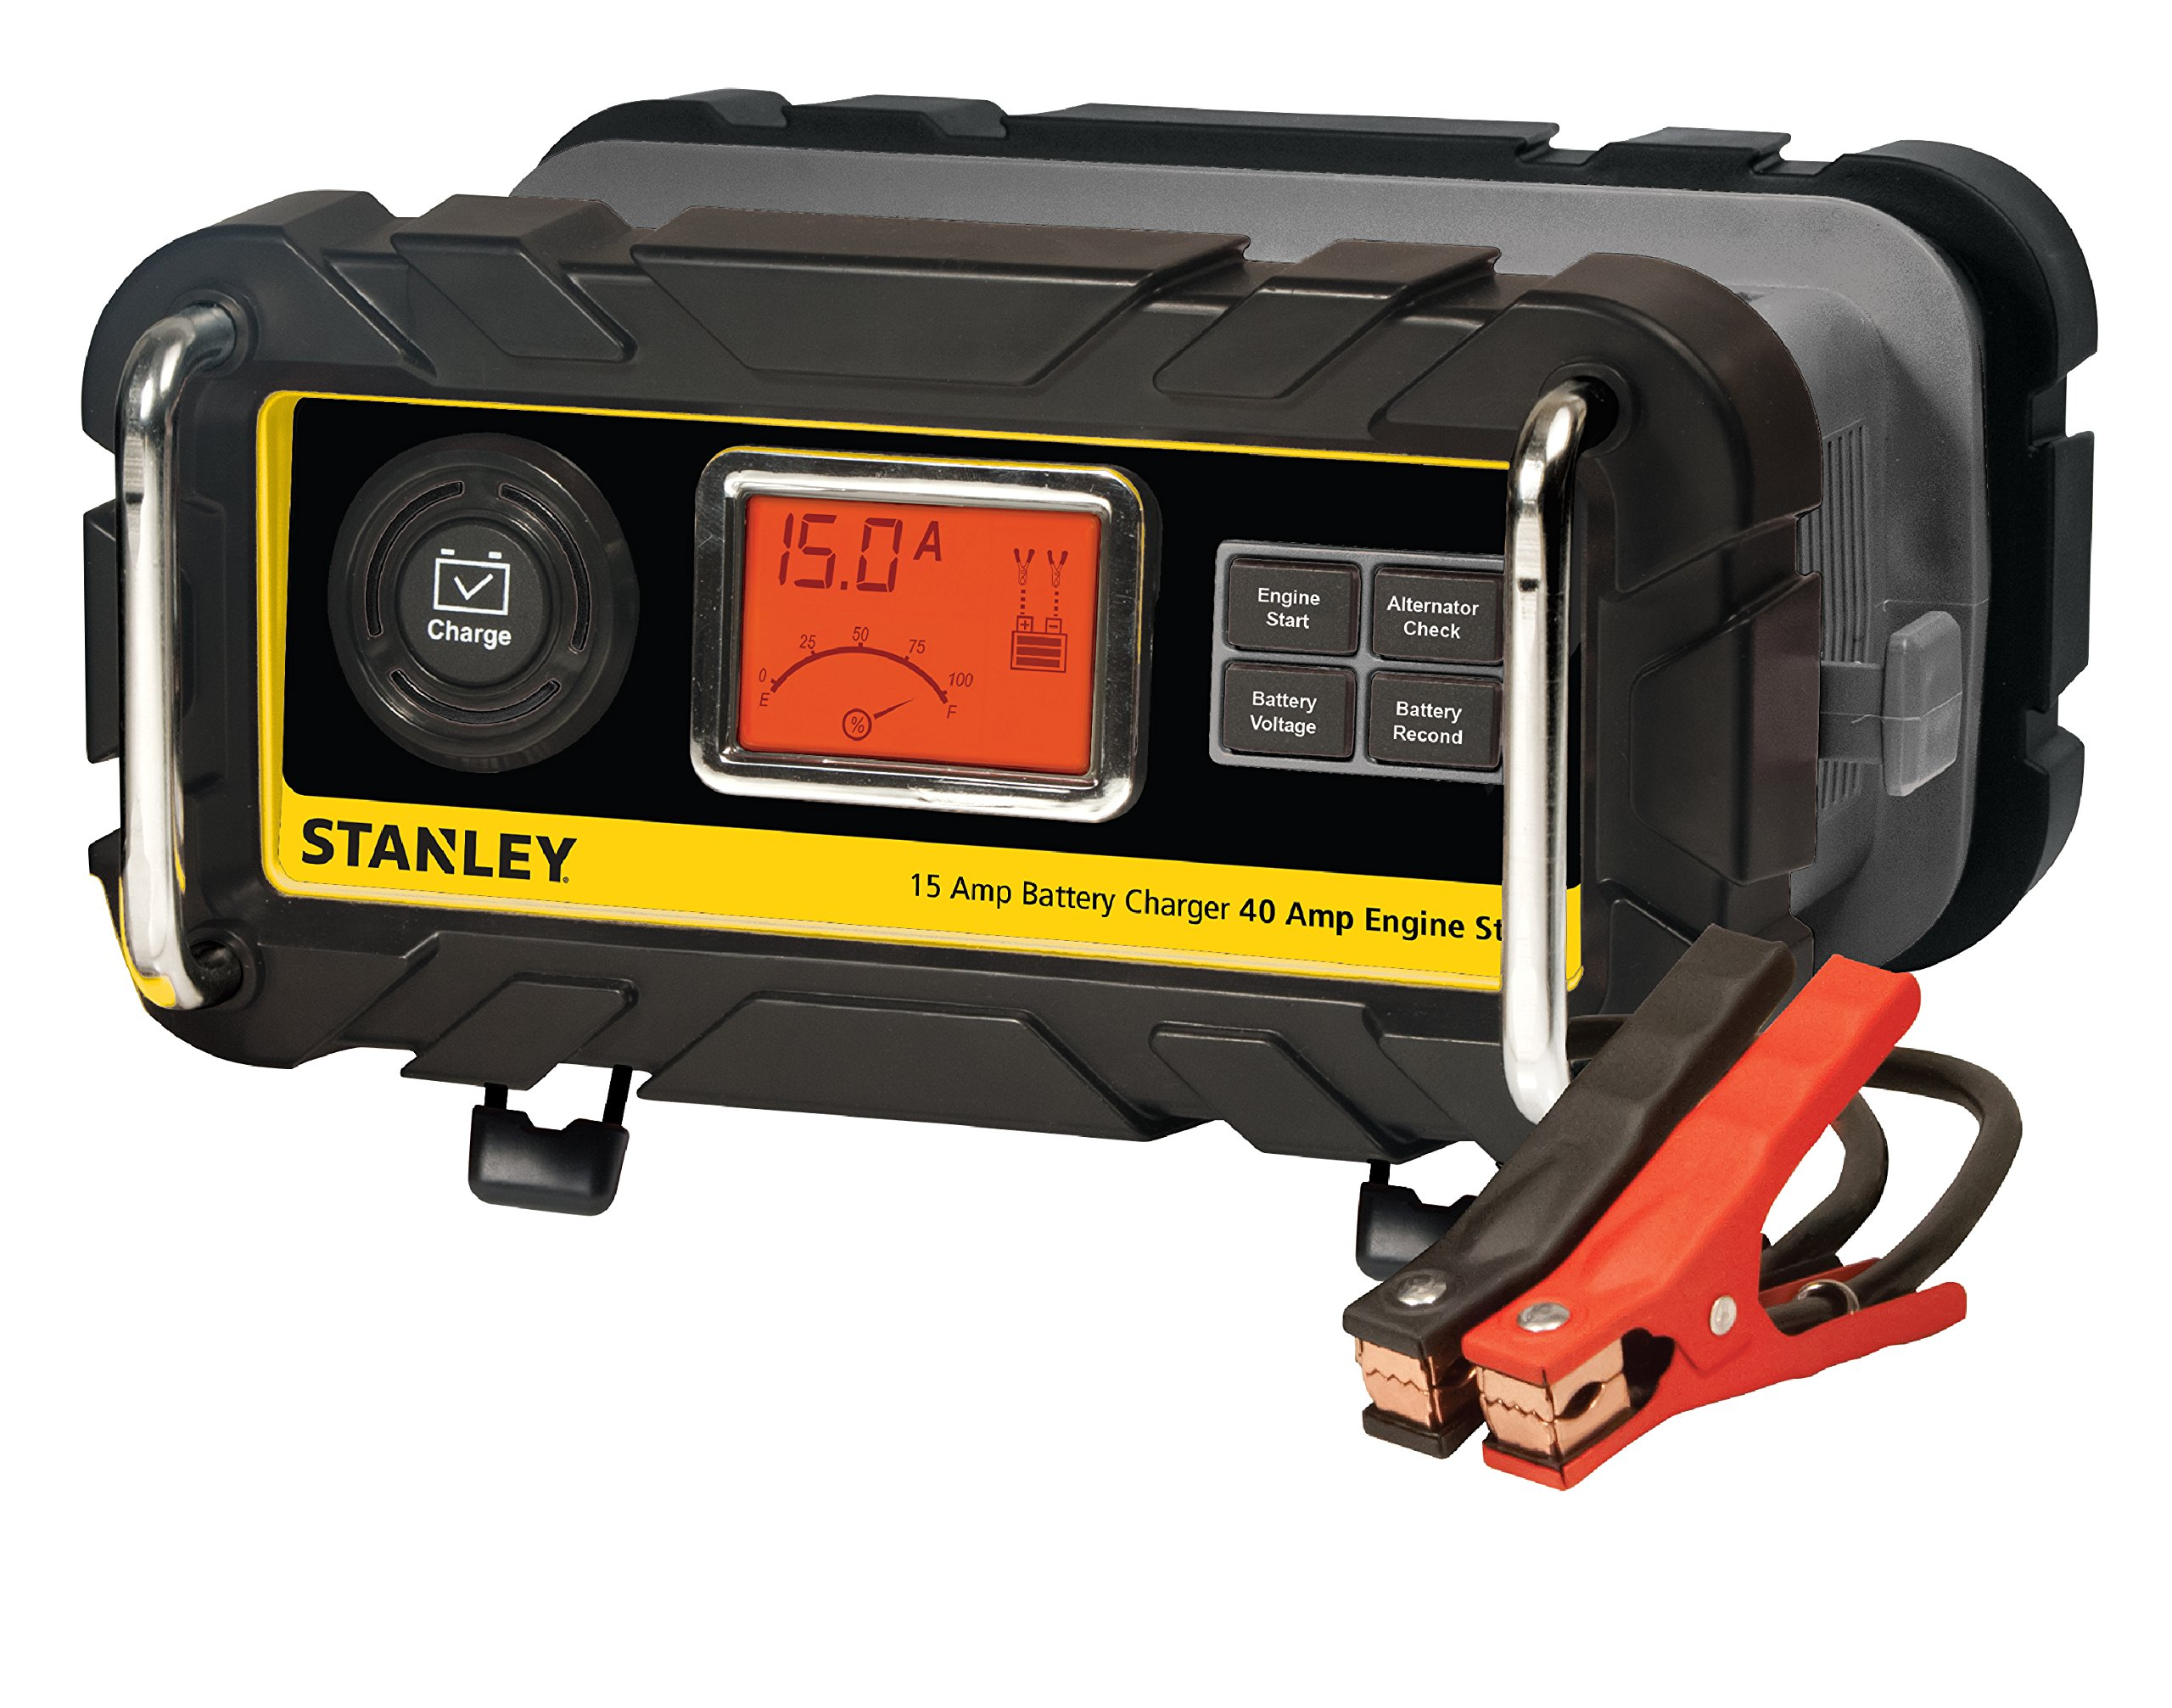 STANLEY BC15BS Fully Automatic 15 Amp 12V Bench Battery Charger/Maintainer with 40A Engine Start, Alternator Check, Cable Clamps by STANLEY (Image #1)